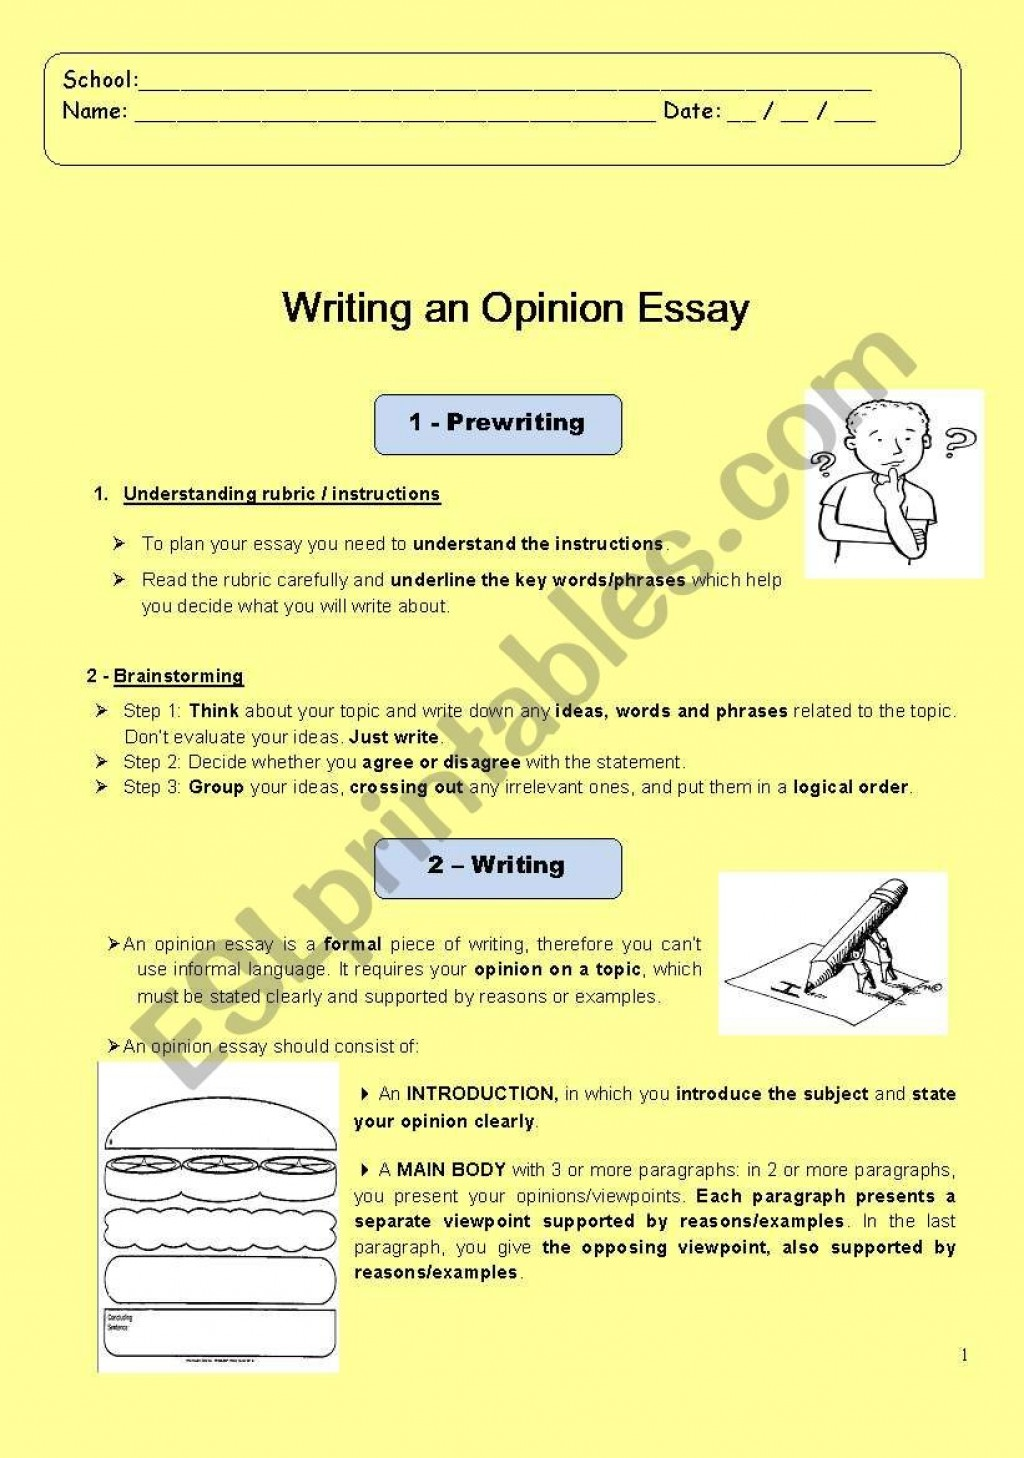 020 519469 1 How To Write An Essay Example Writing Shocking Opinion Argumentative 5th Grade Video Large